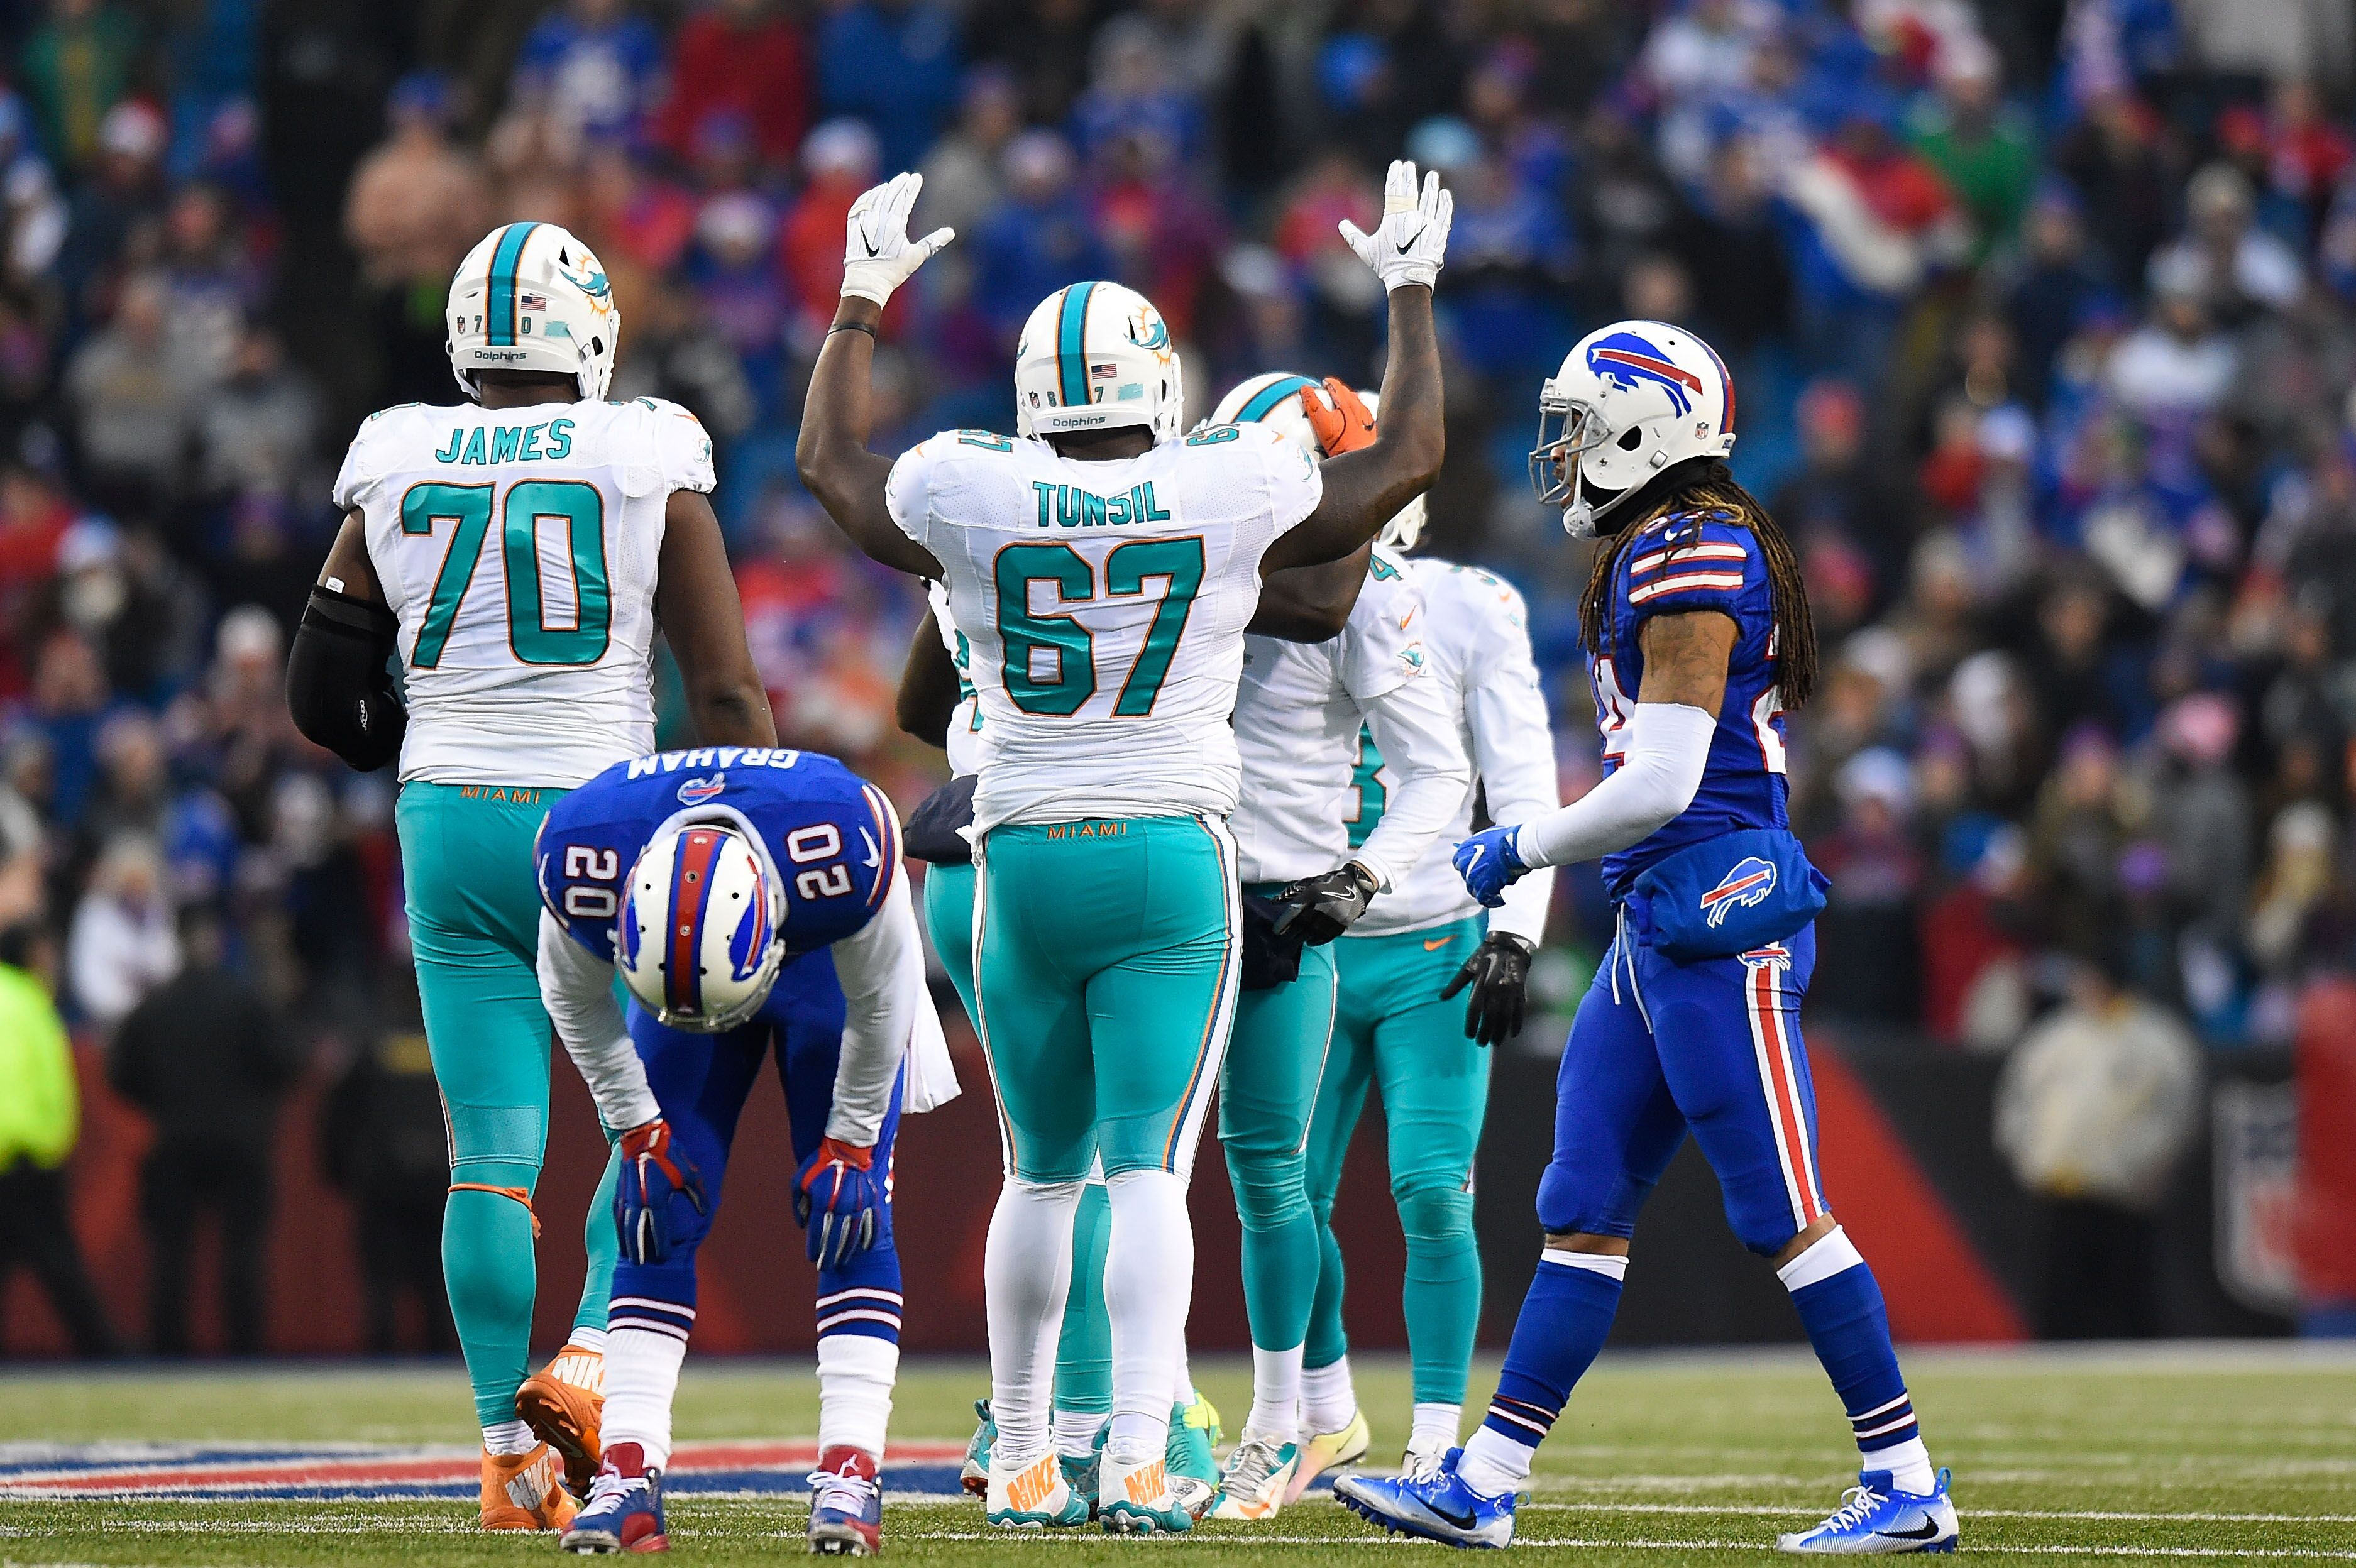 FanSided 2016 NFL Draft retrospective shows Miami Dolphins did well